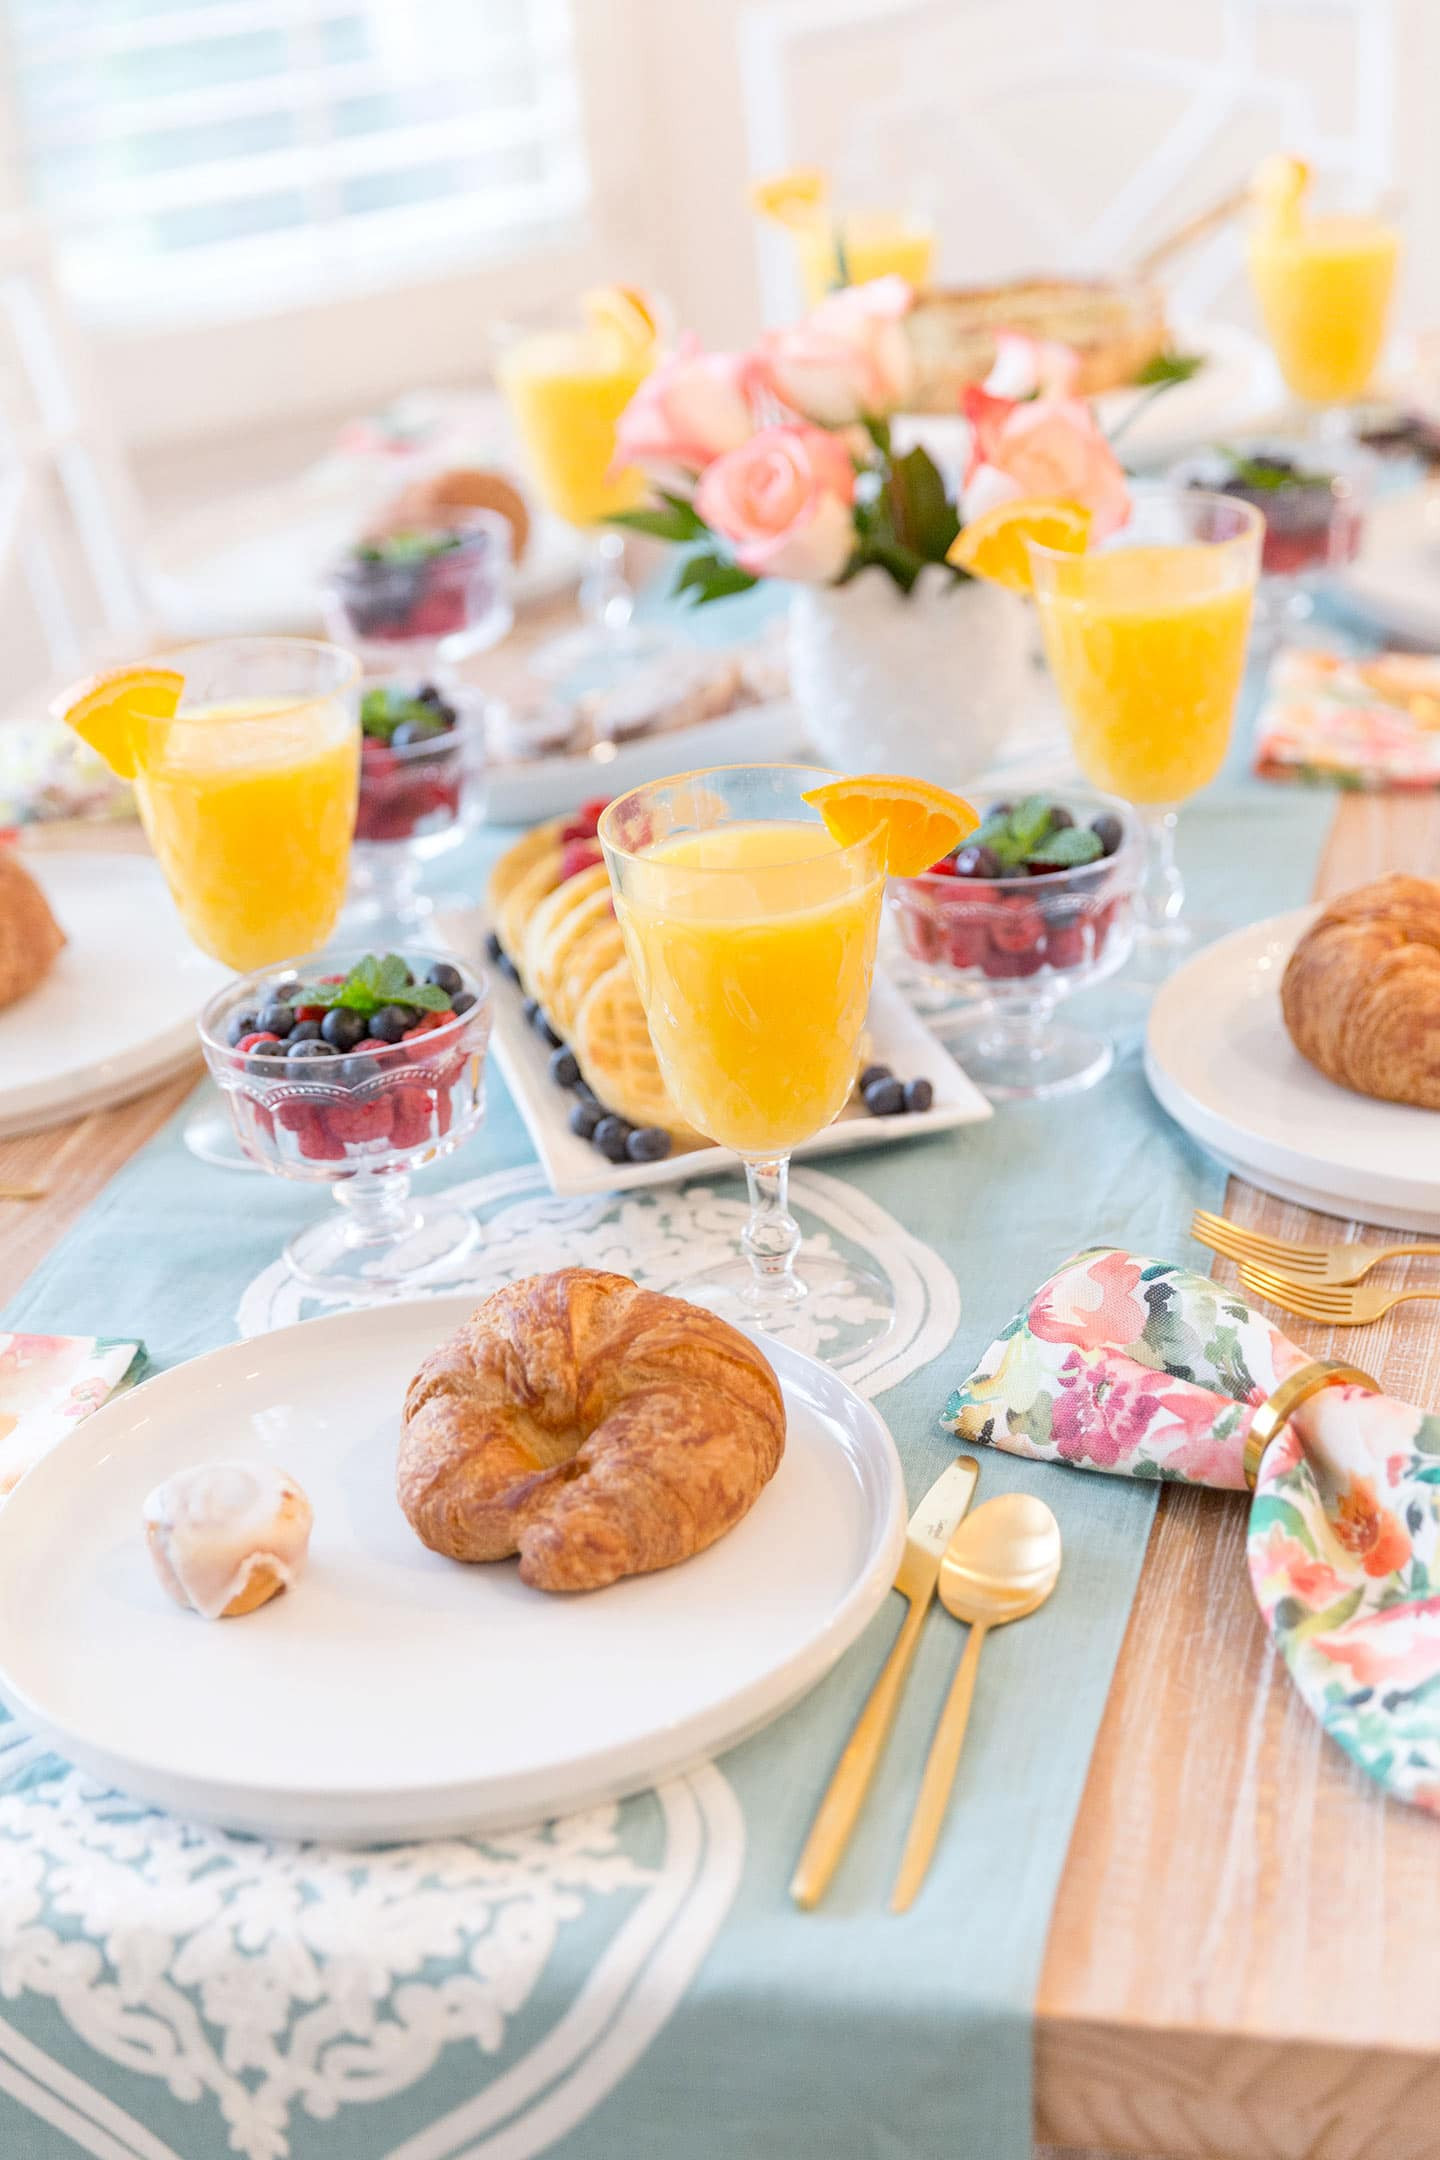 Birthday Brunch Ideas  The Secret to Hosting an Effortless Brunch